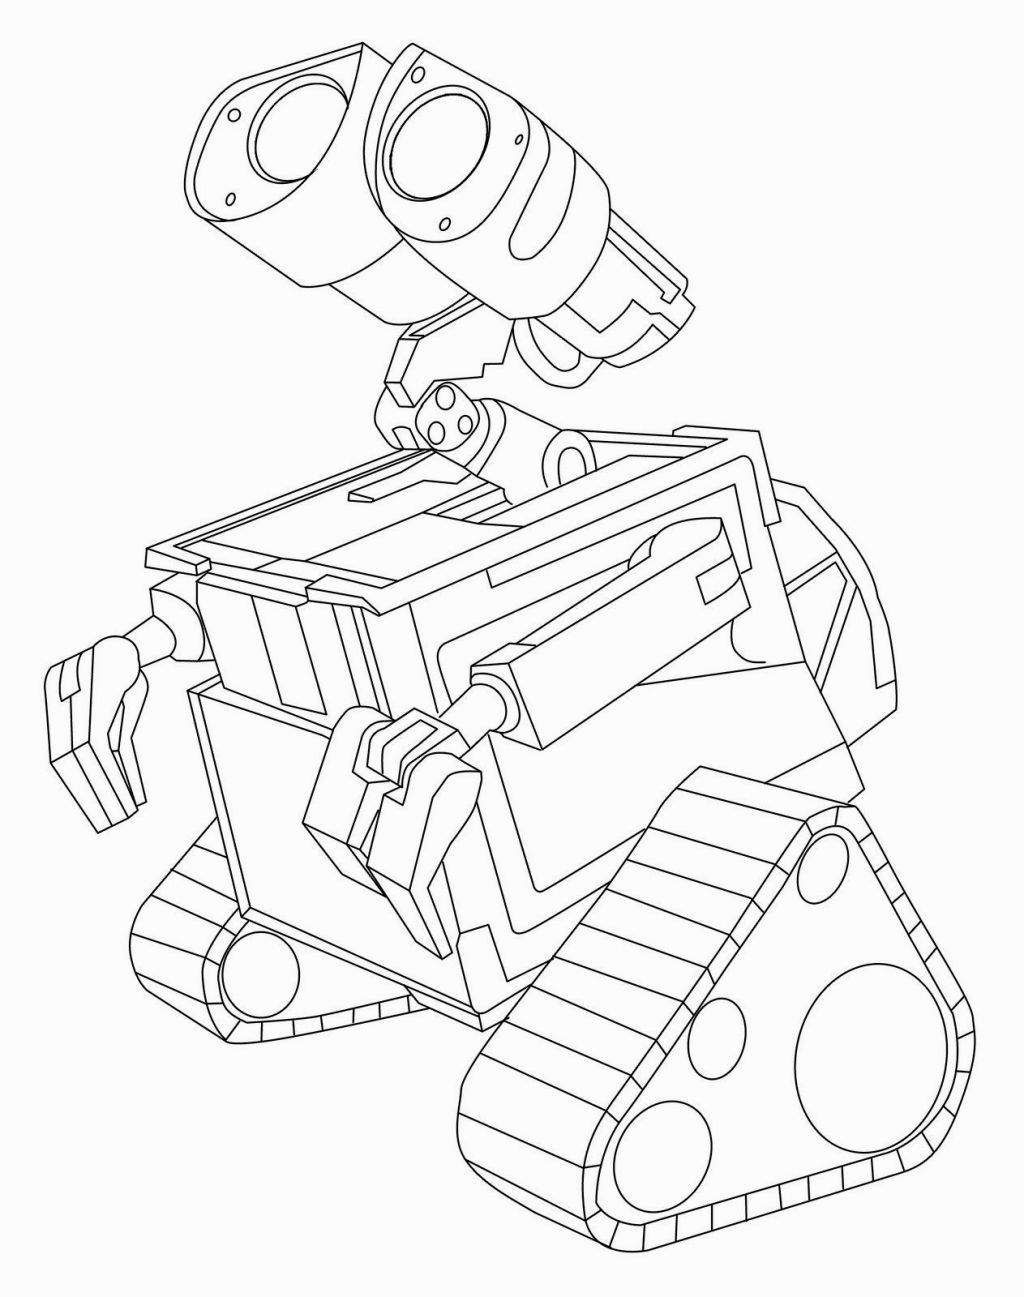 Wall E Coloring Page Free Kids Coloring Pages Coloring Pages Disney Coloring Pages